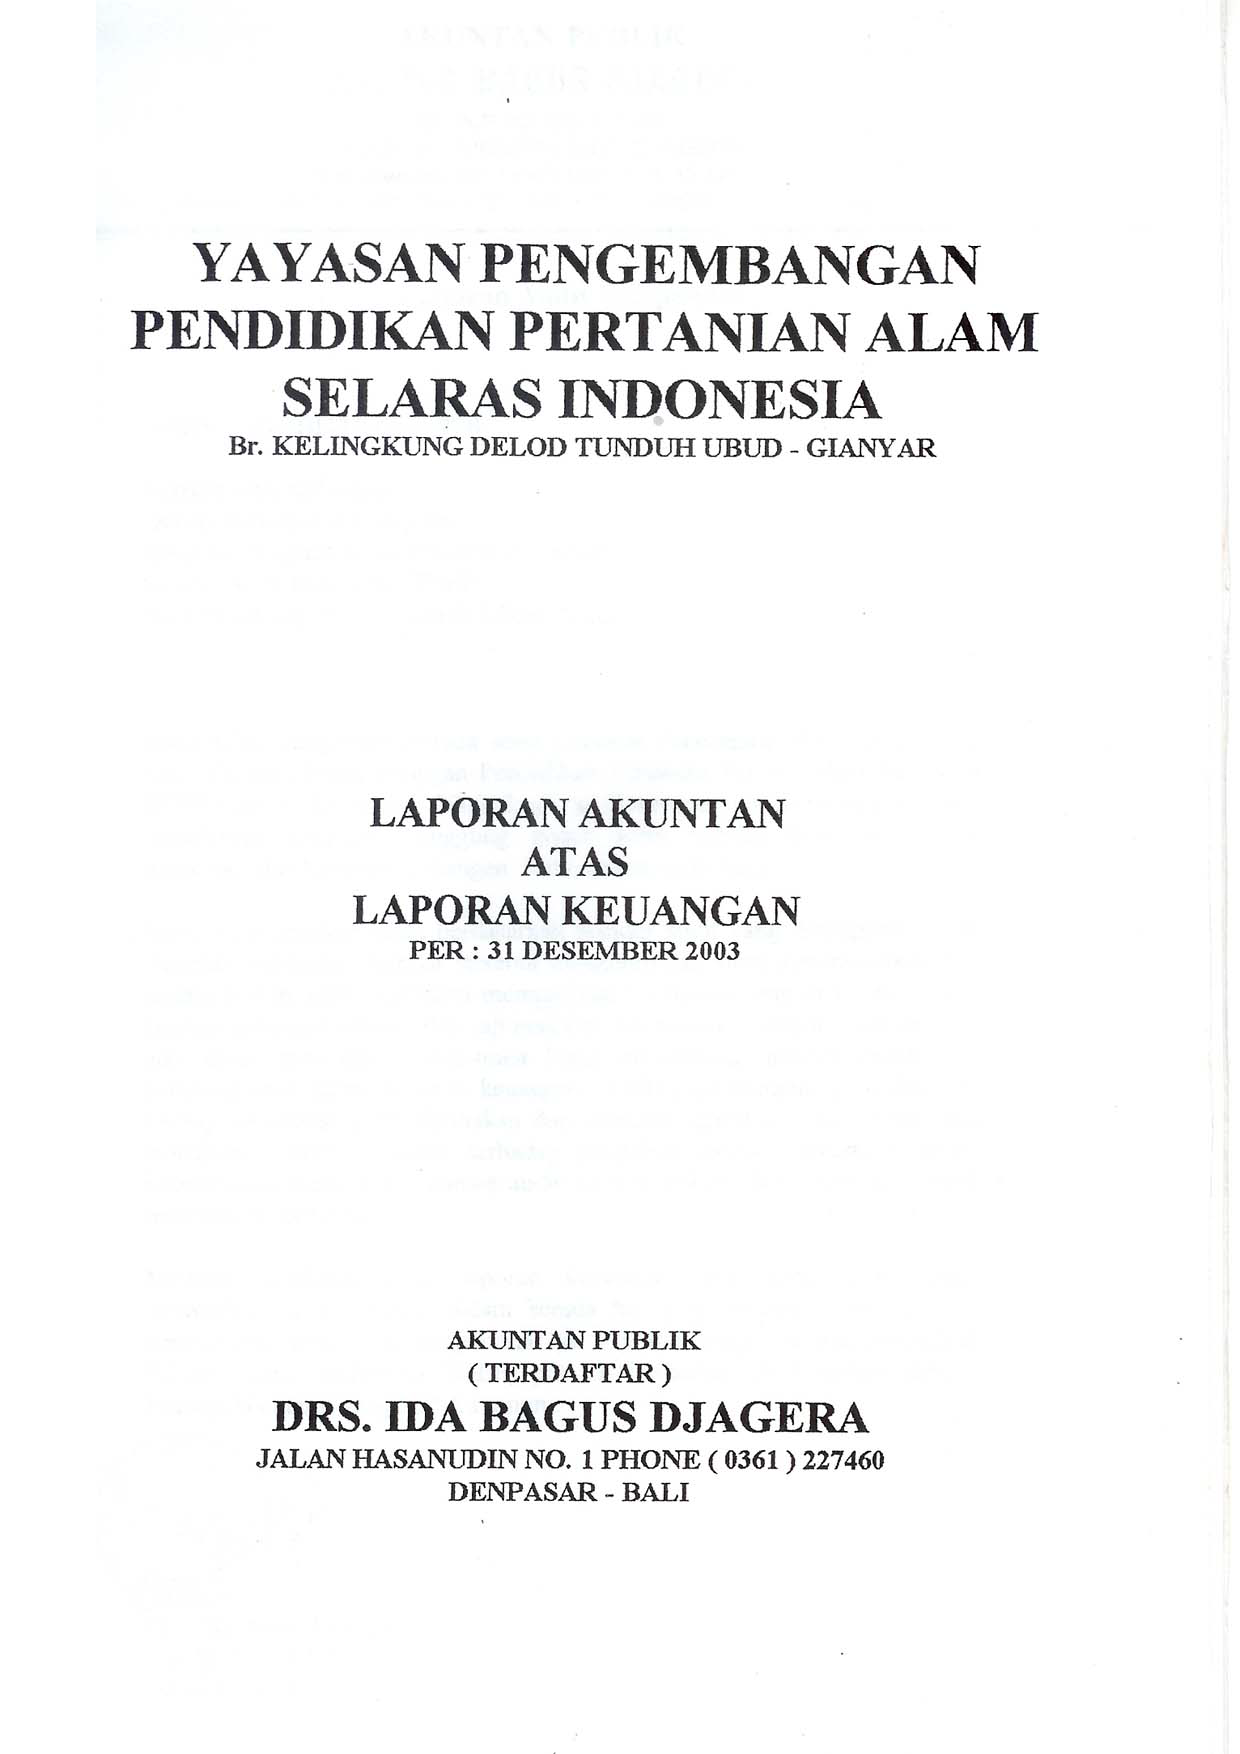 idep auditor report 2003 id